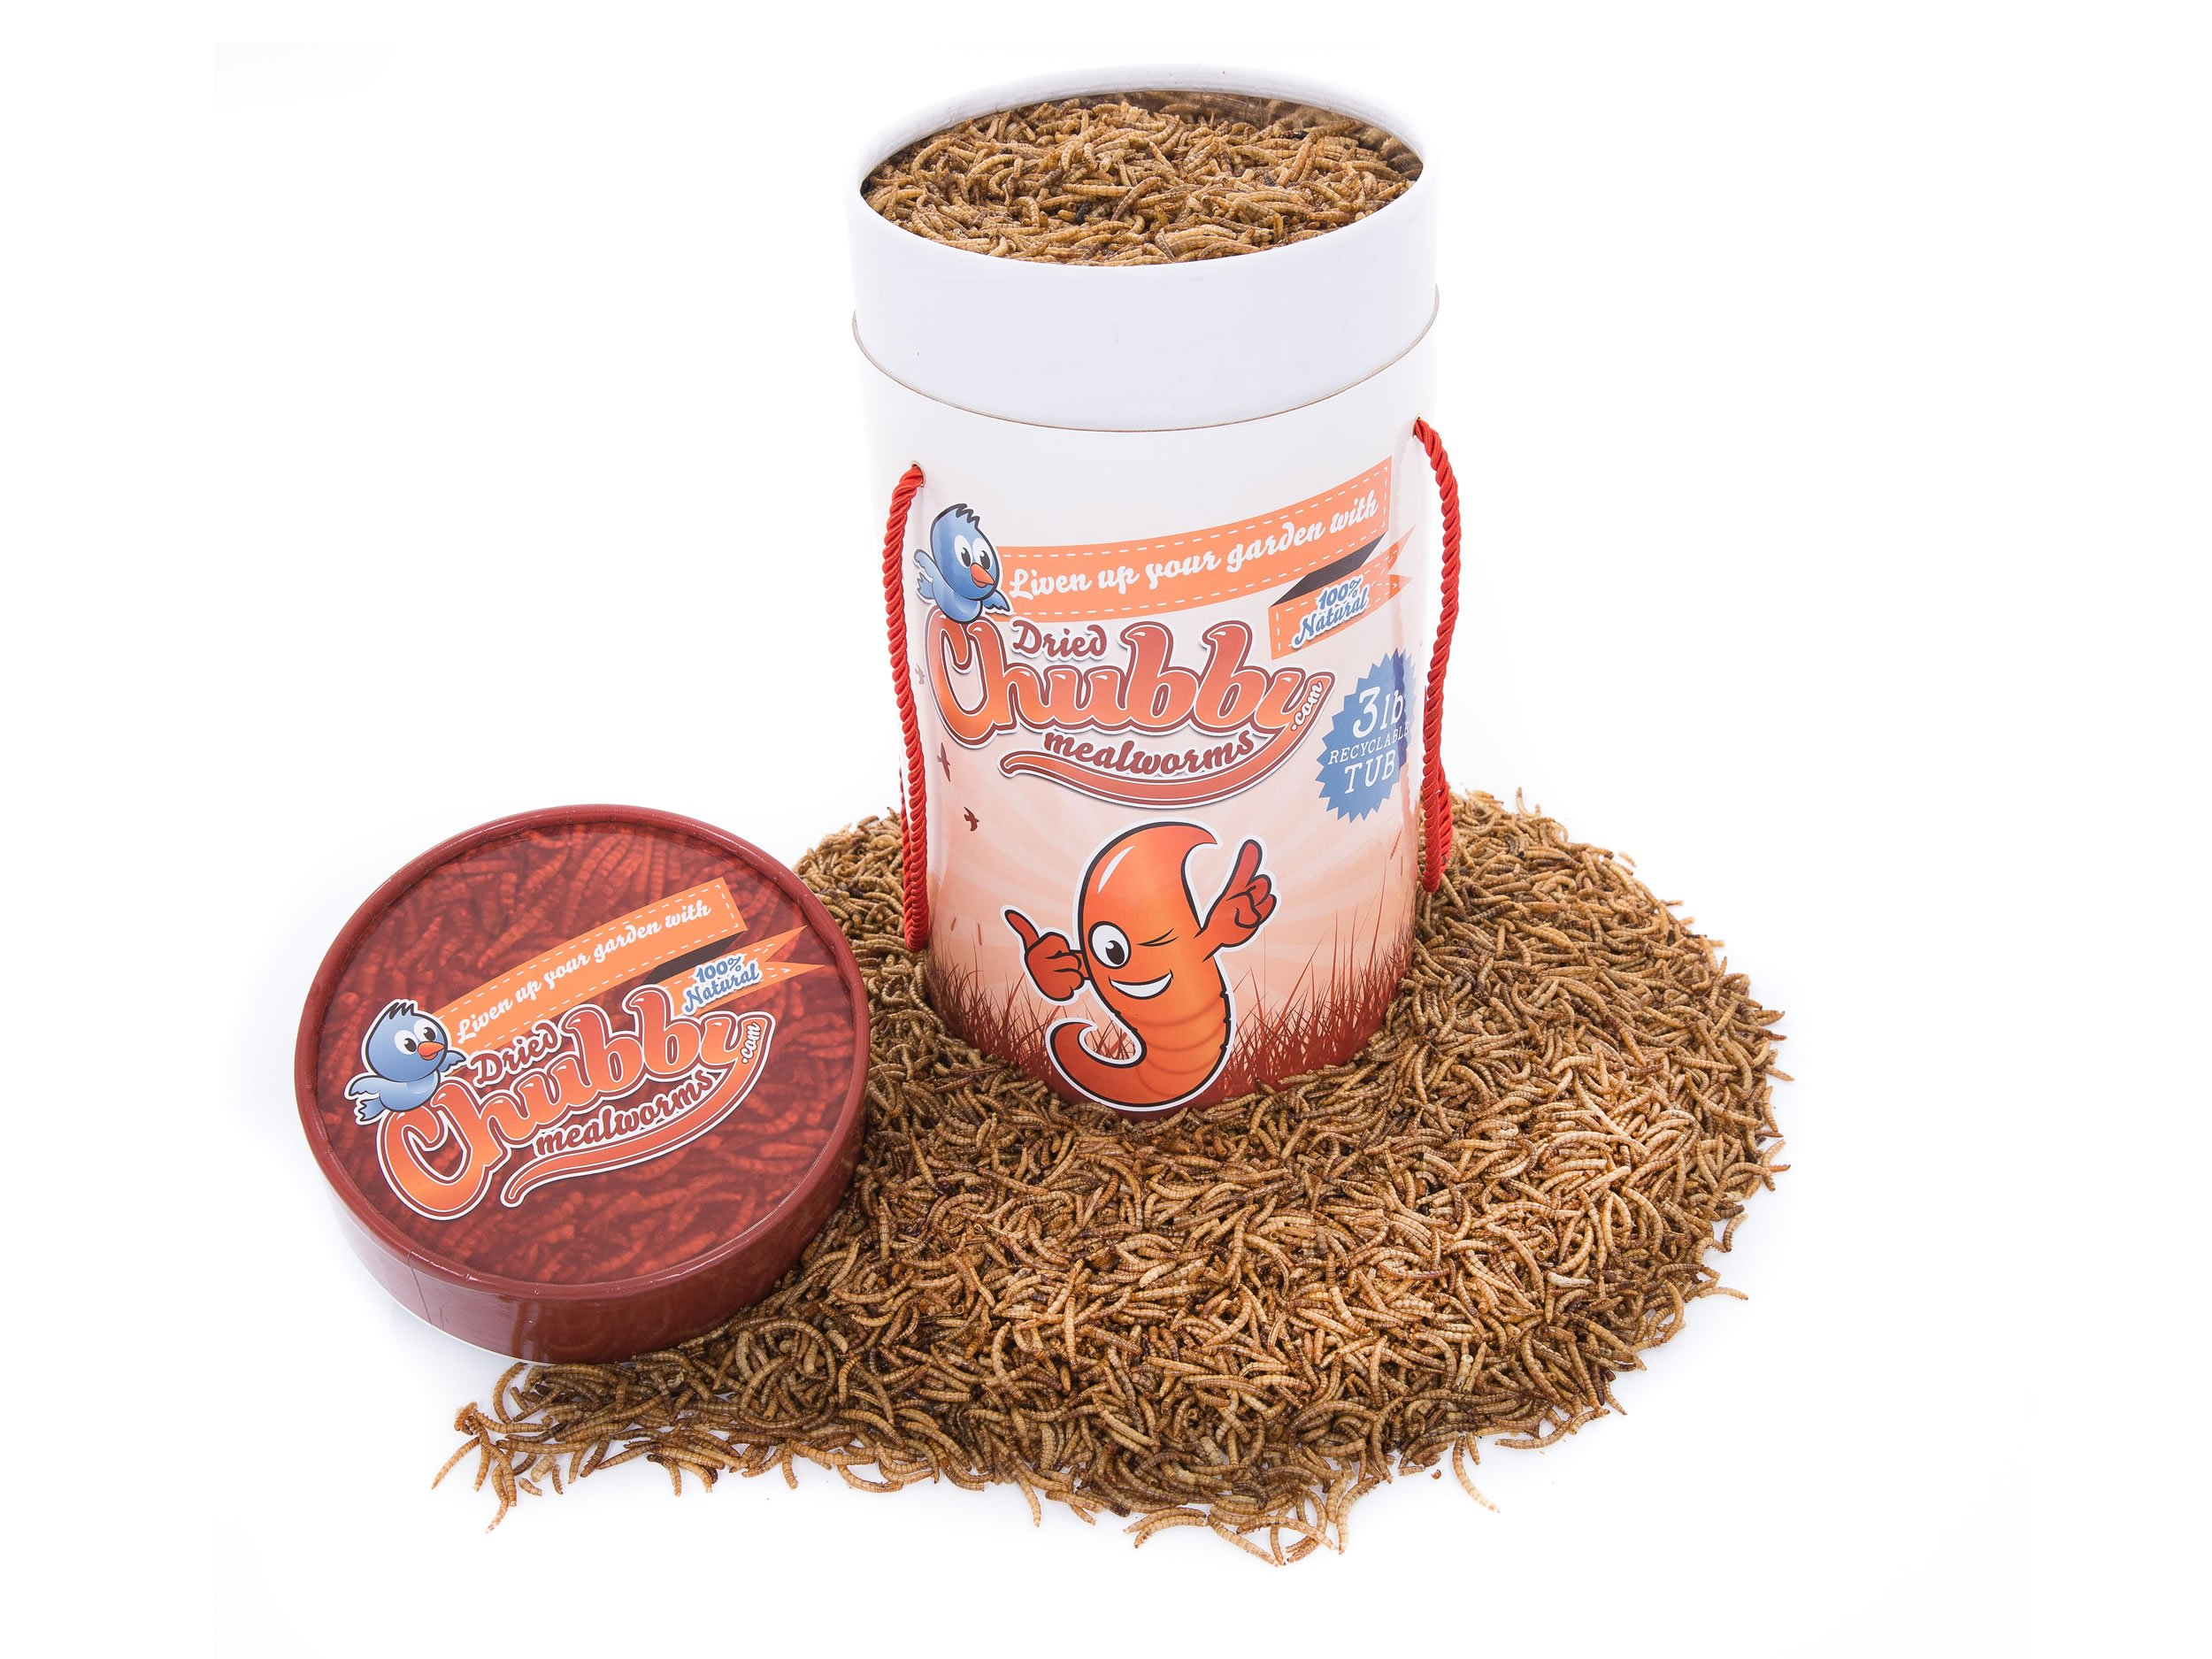 Chubby Mealworms Bulk Dried Mealworms for Wild Birds, Chickens etc. (3lb Tub) by Chubby Mealworms